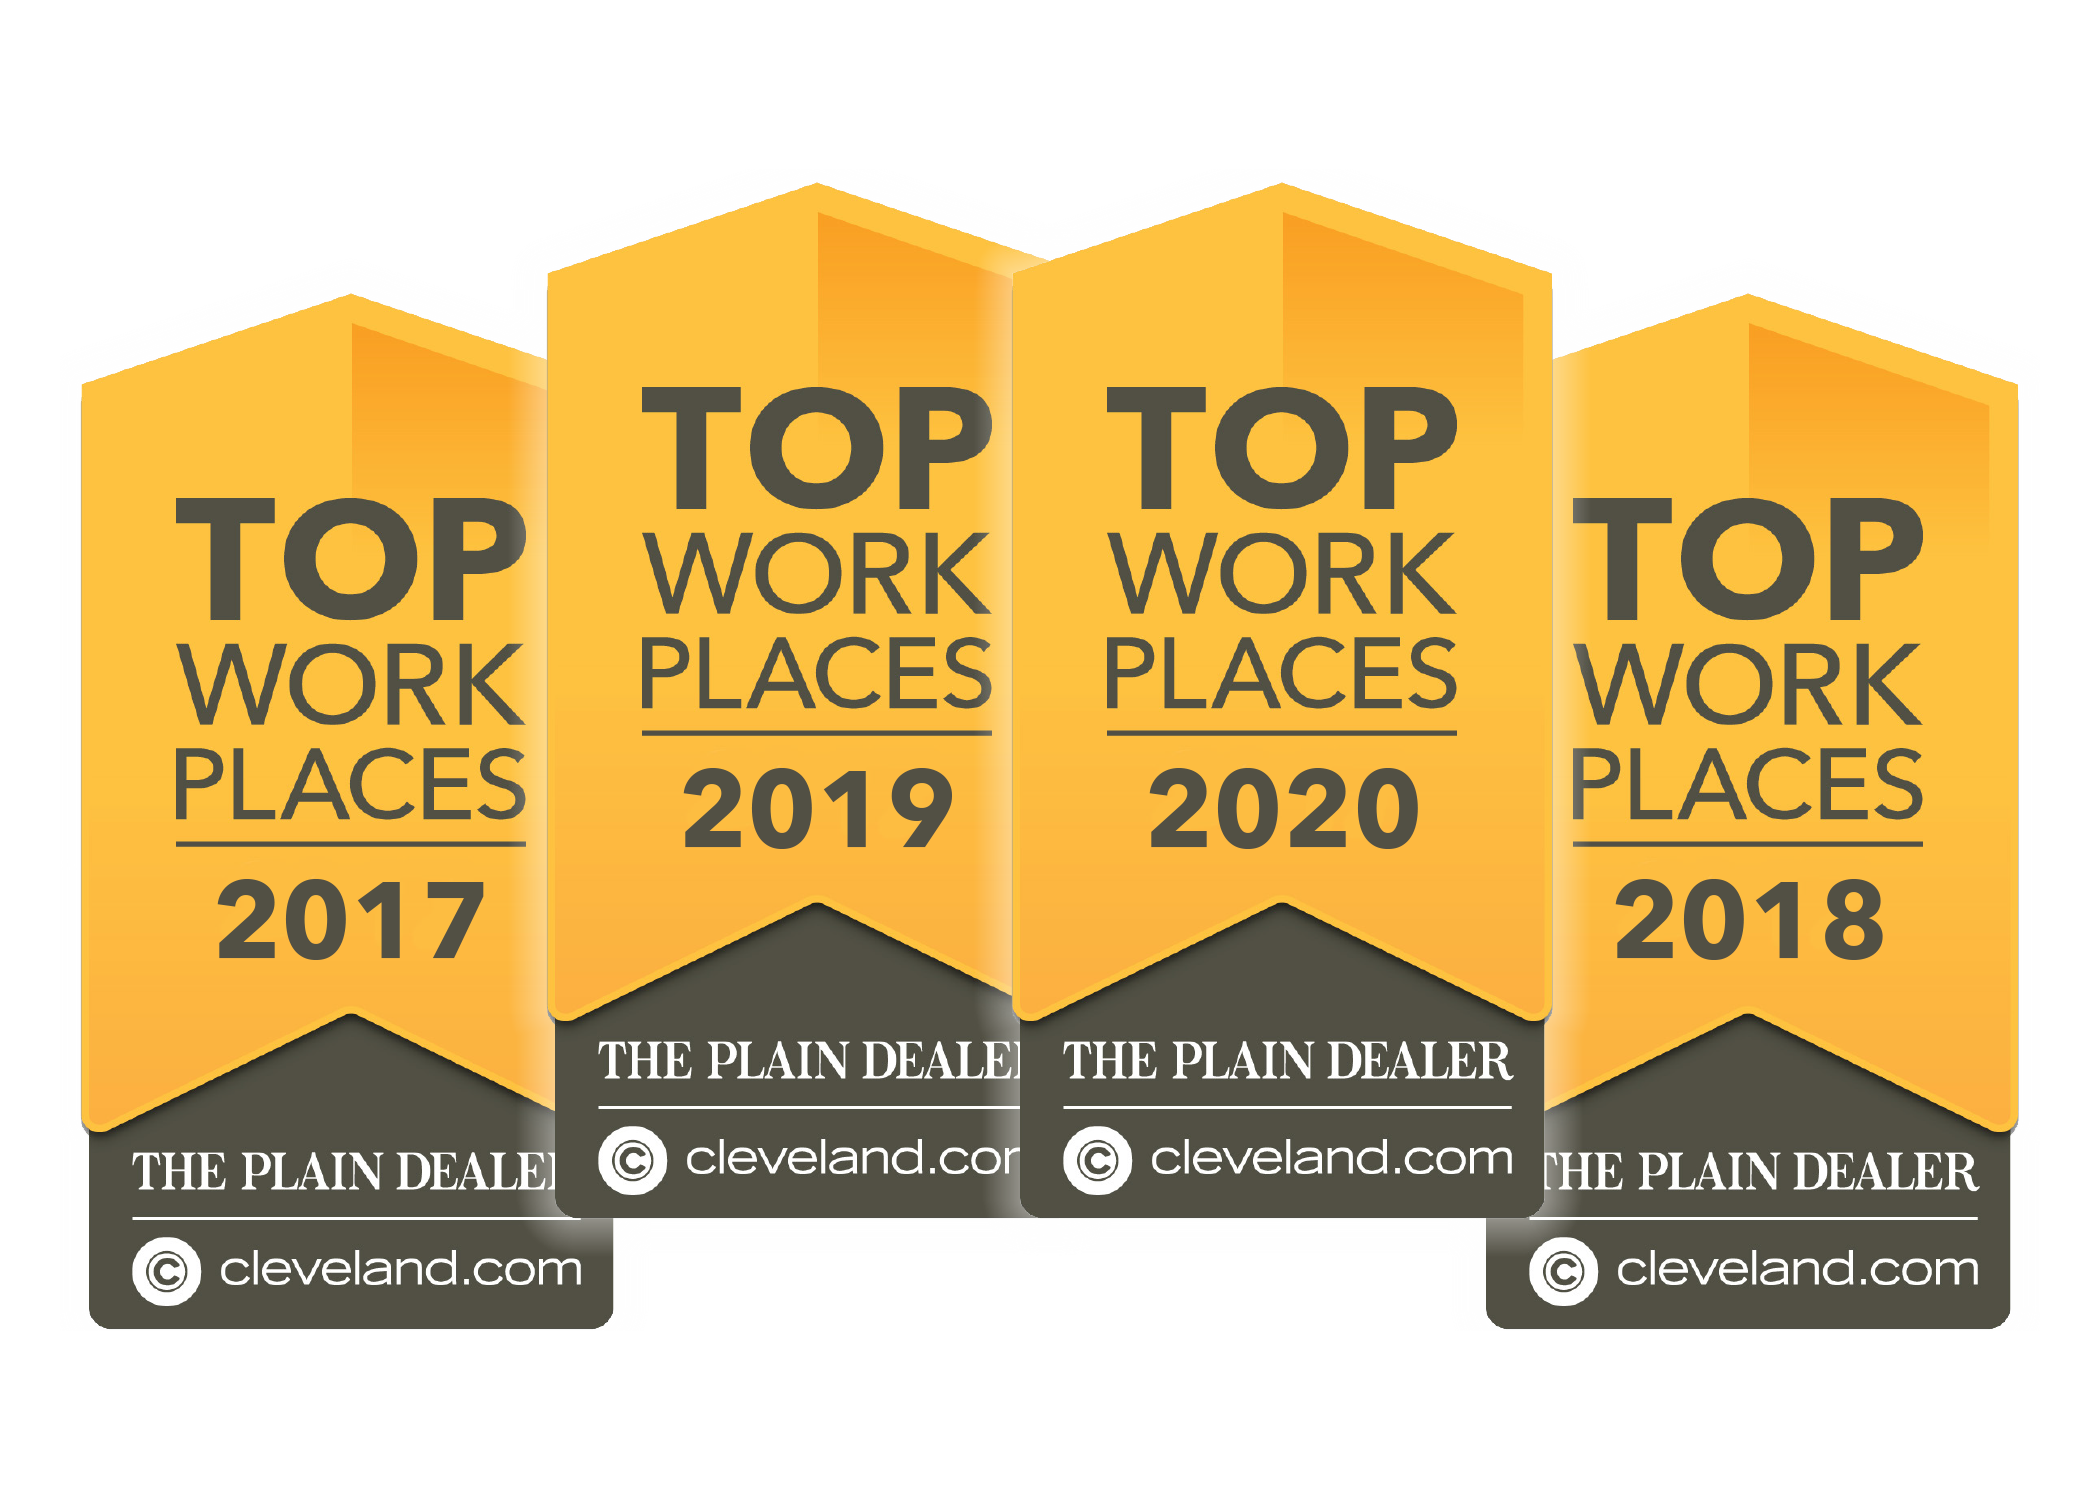 Top Workplaces 2020 - The Plain Dealer